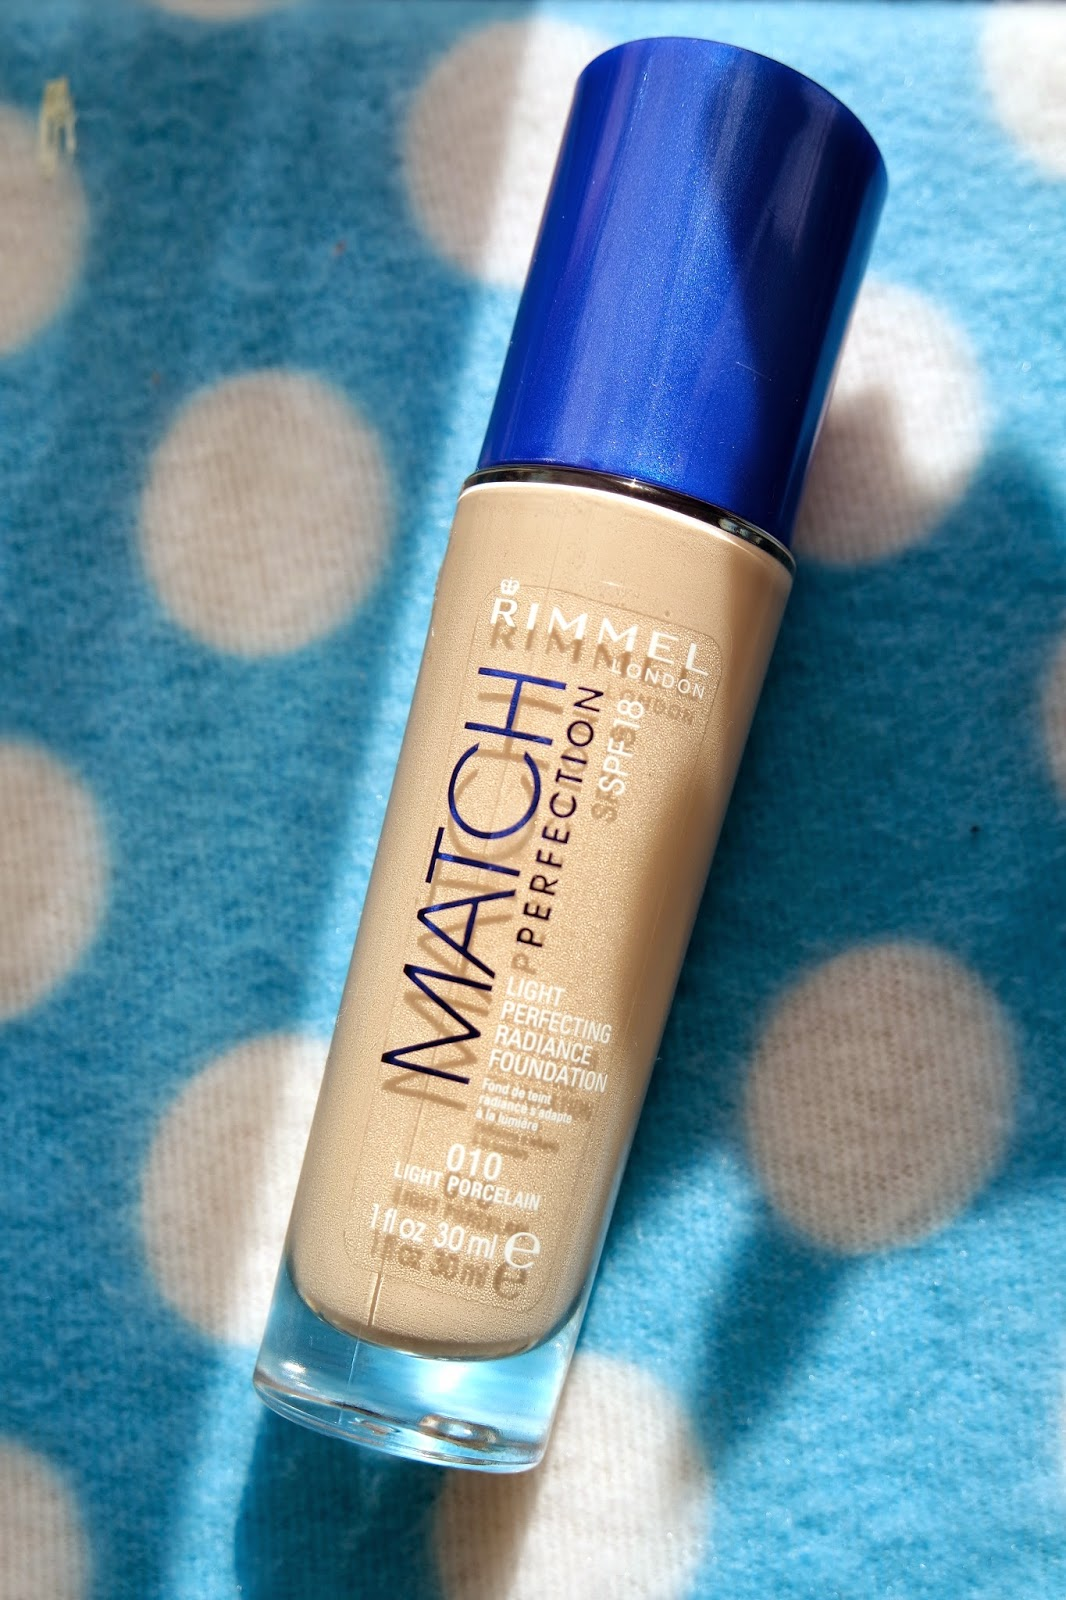 My favourite Foundation